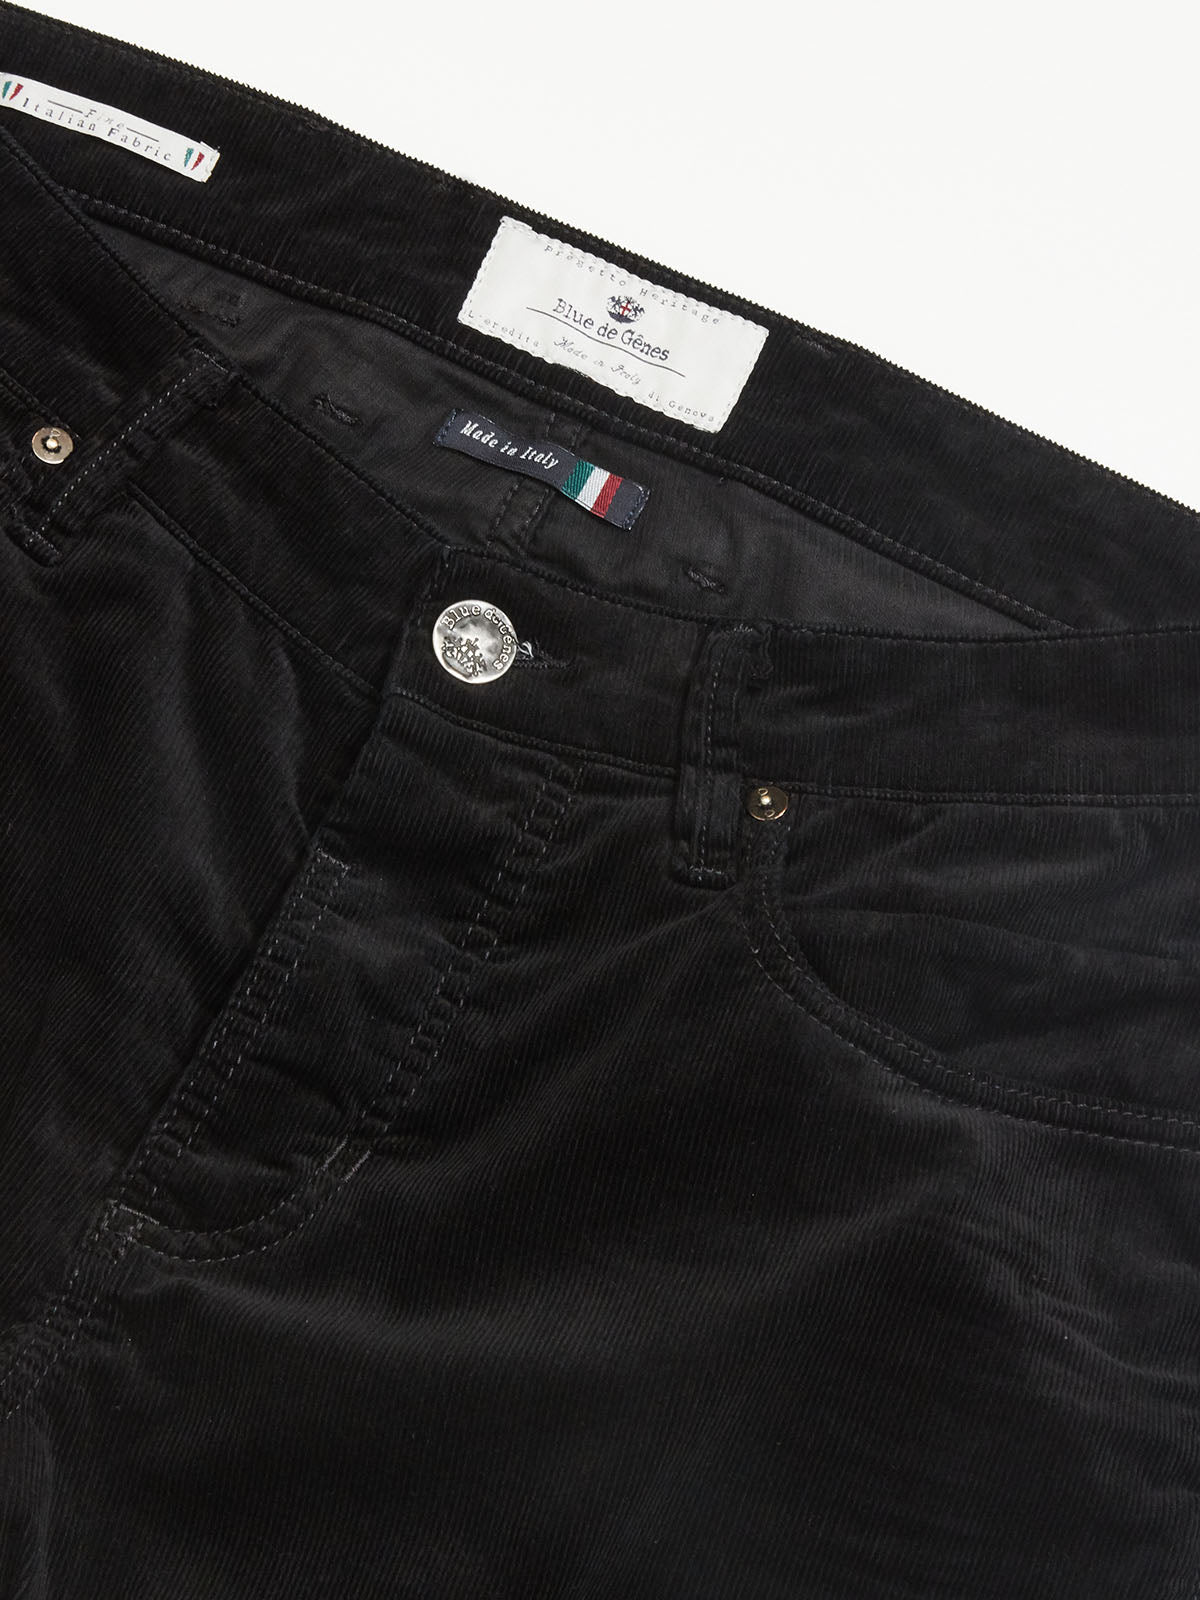 Vinci Zoldo Trousers - Black